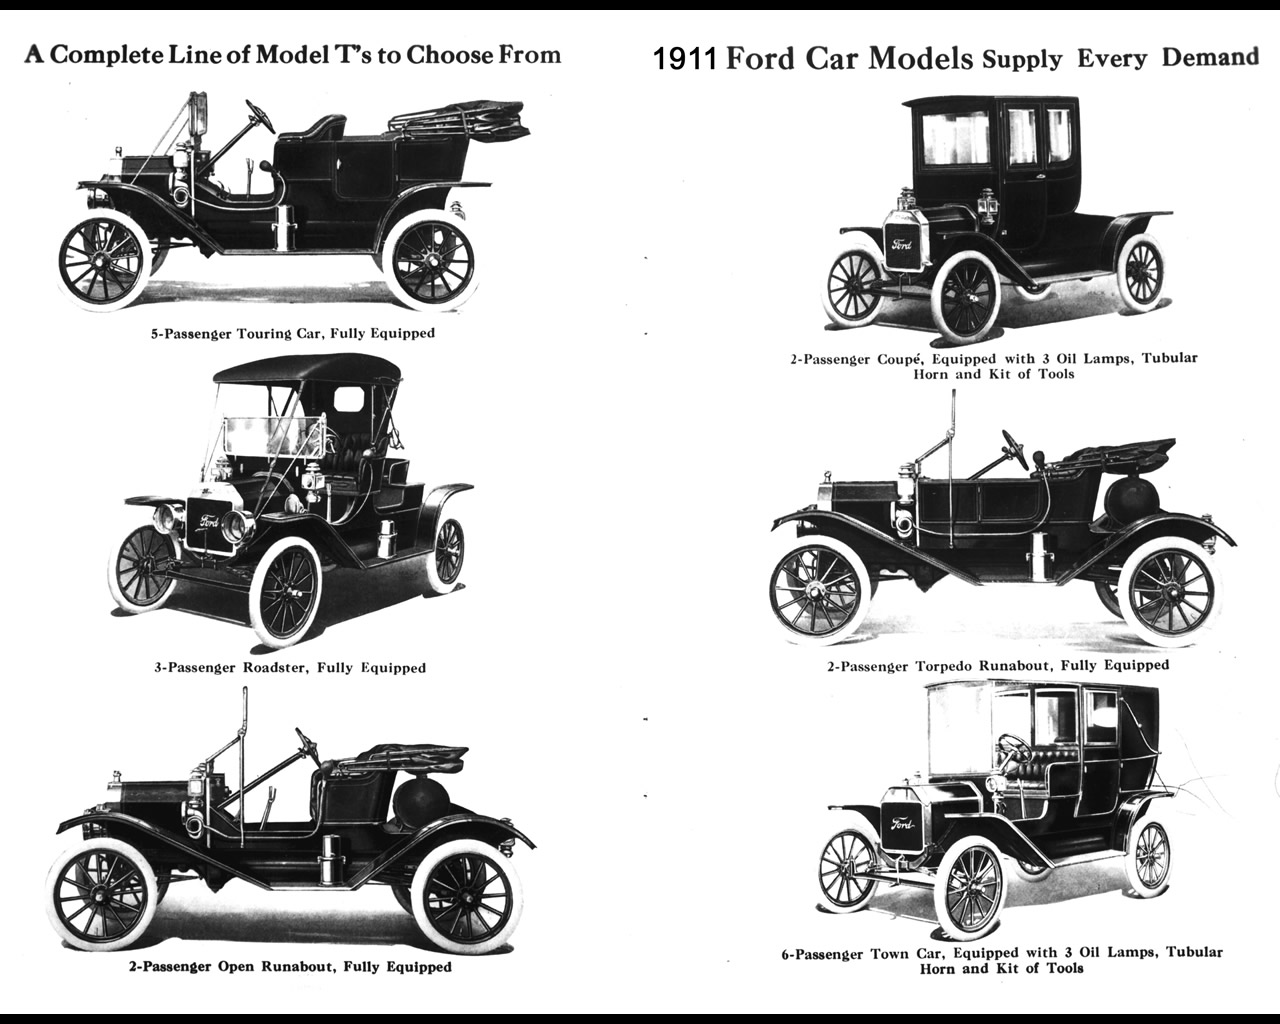 http://www.autoconcept-reviews.com/cars_reviews/ford/ford-model-t-1908-1925/wallpaper/1911%20FordModelT1911Line-Upad_HR%20copy.jpg